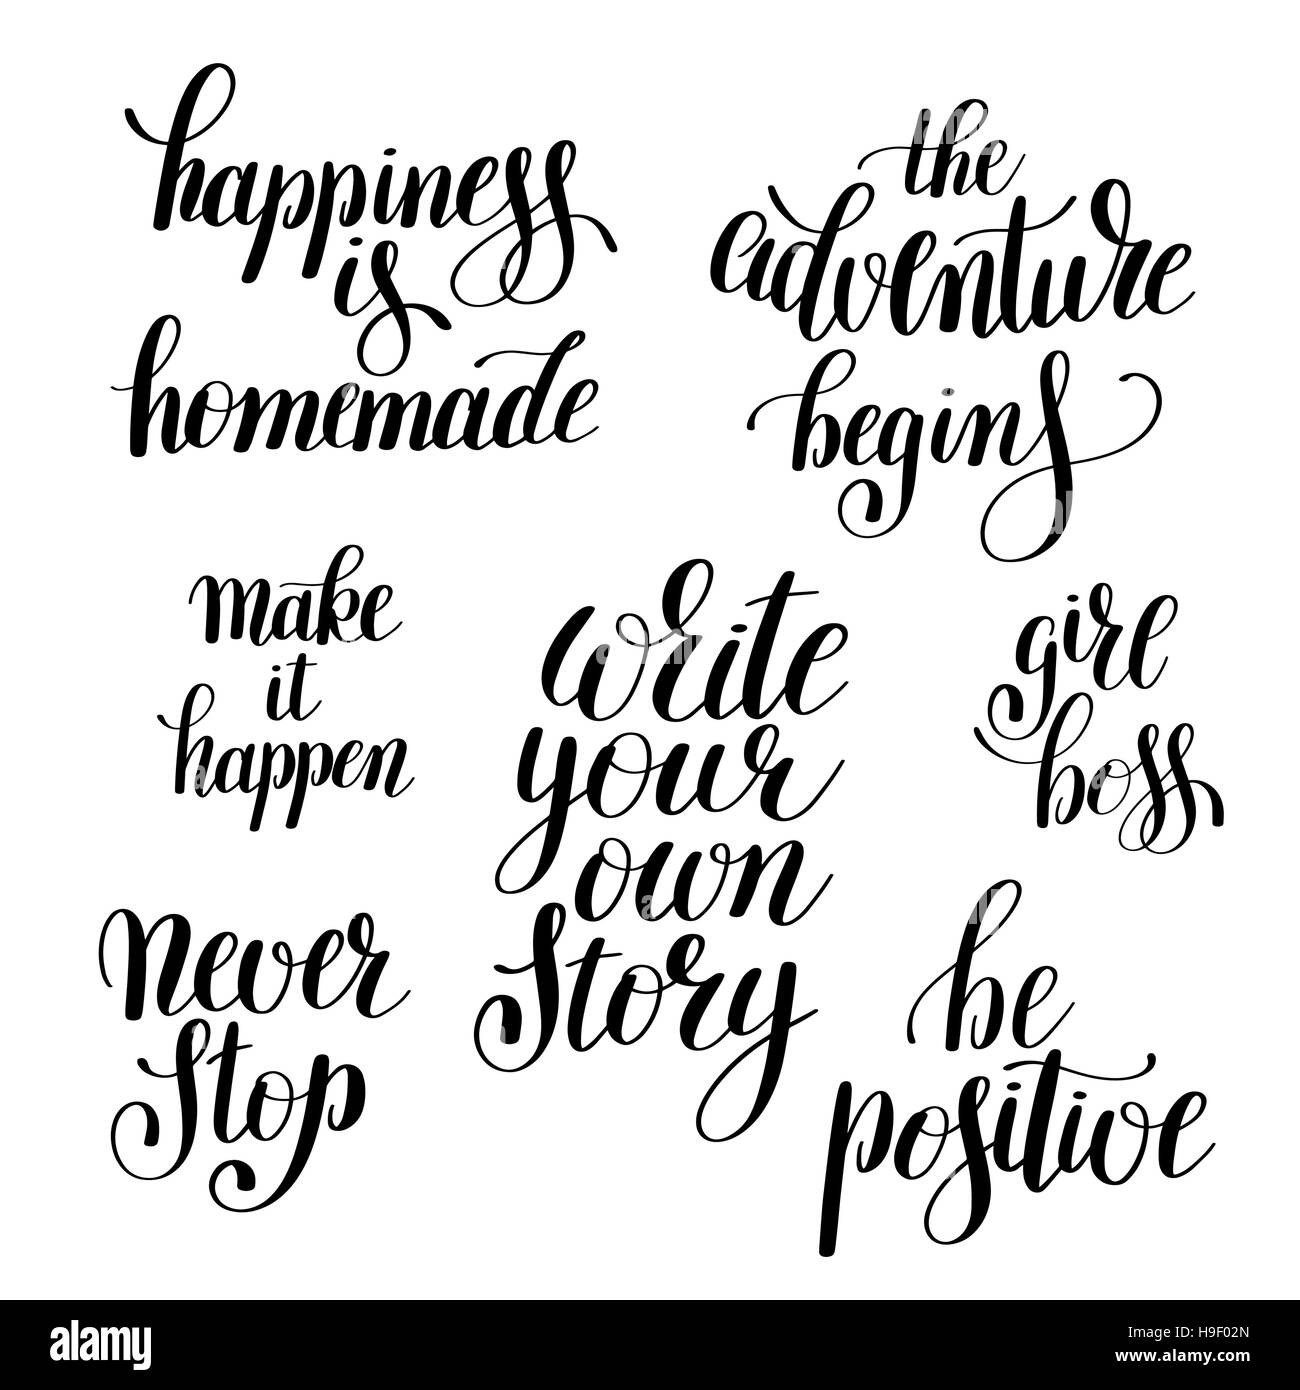 Positive Inspirational Quotes Set Of Handwritten Positive Inspirational Quotes Brush Typograph